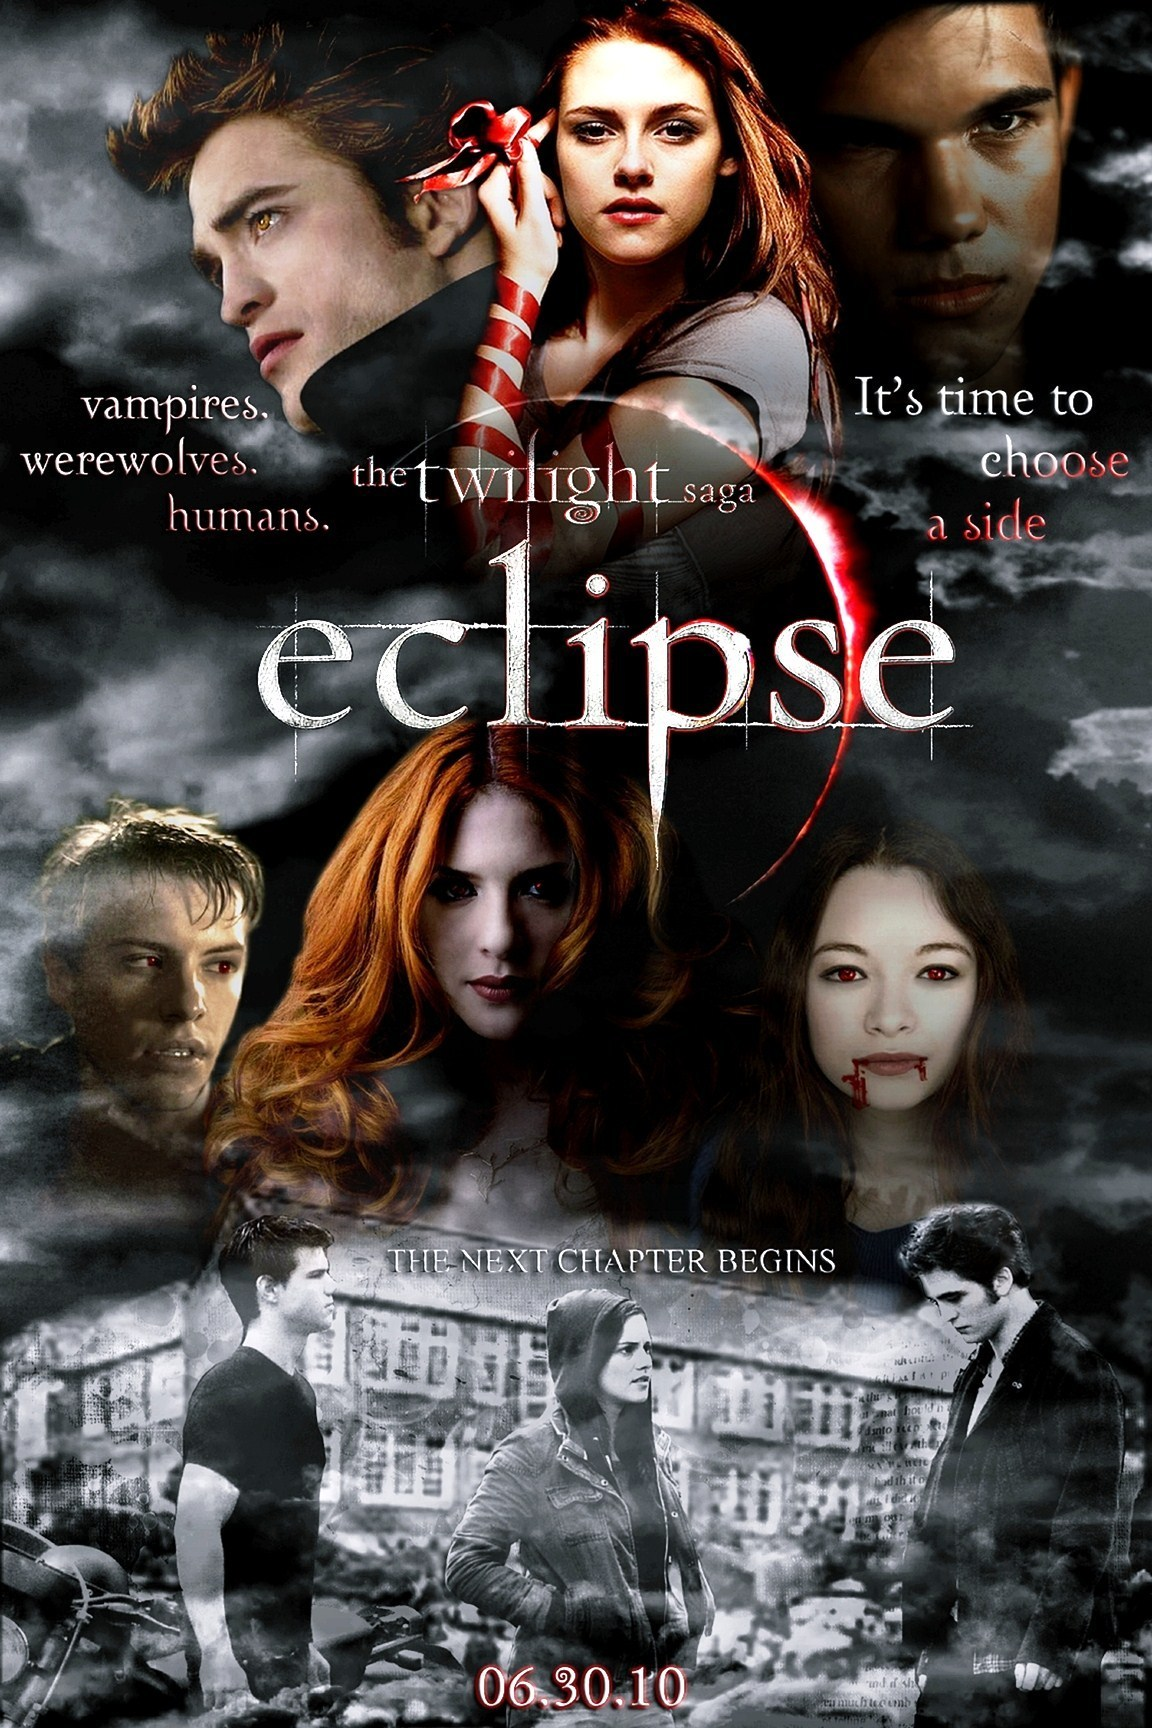 http://images2.fanpop.com/image/photos/10000000/-Eclipse-twilight-series-10013377-1152-1728.jpg